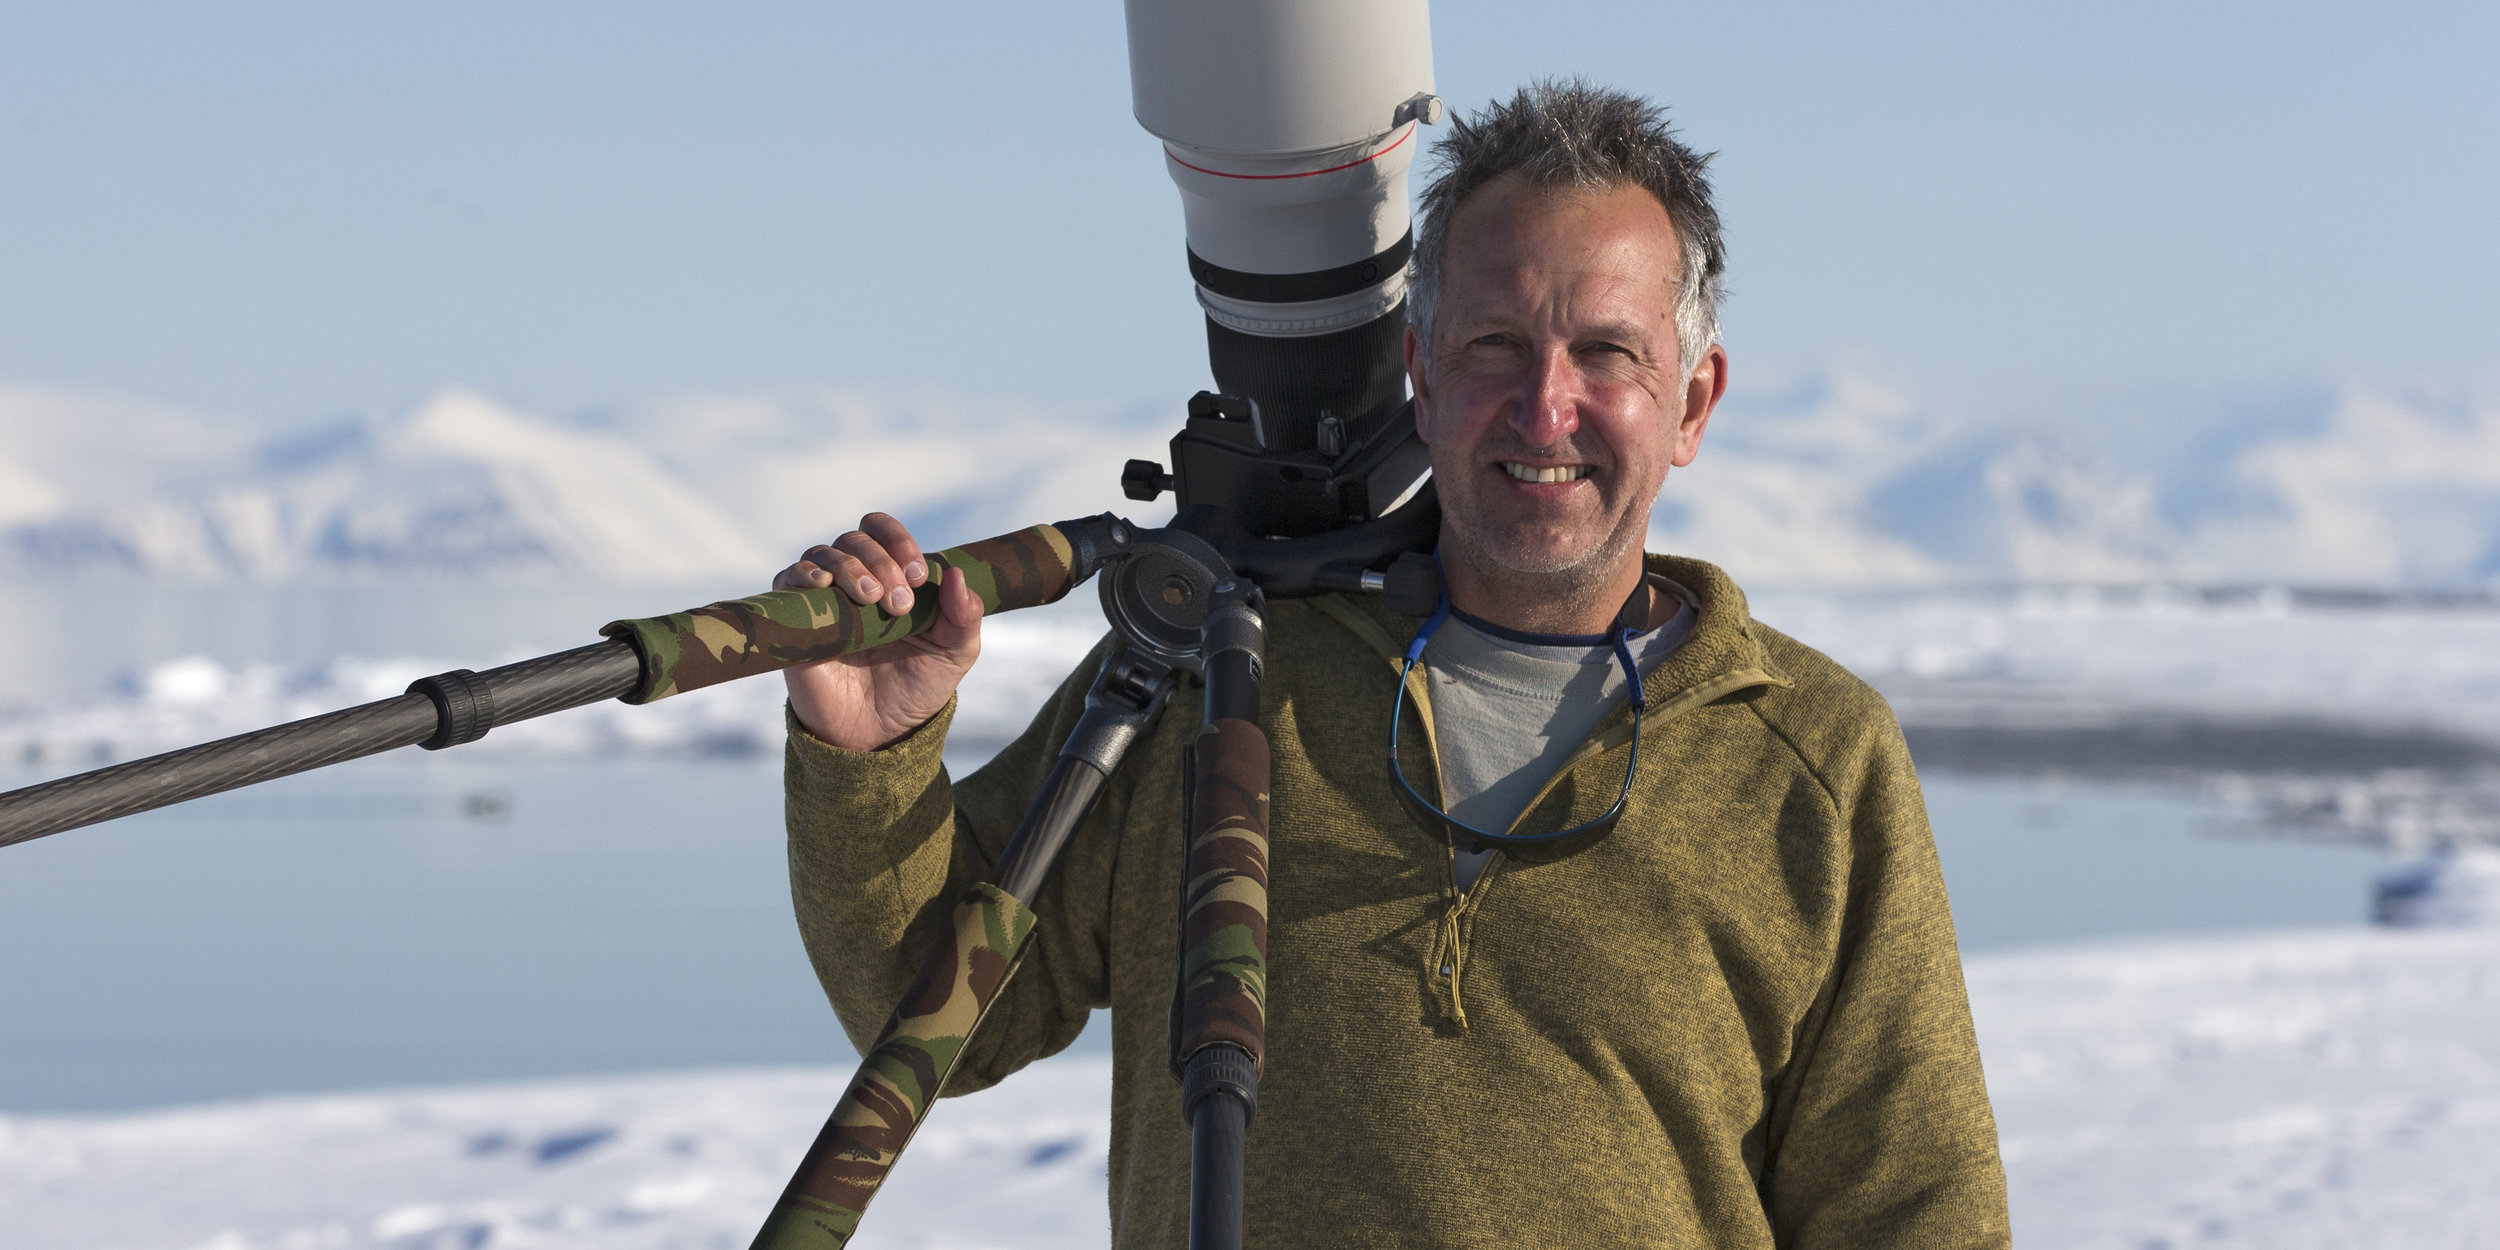 Acclaimed writer, broadcaster, naturalist and photographer Mark Carwardine will be joining us on the evening of 12th July for a special guest talk about his adventures photographing whales and other marine life.